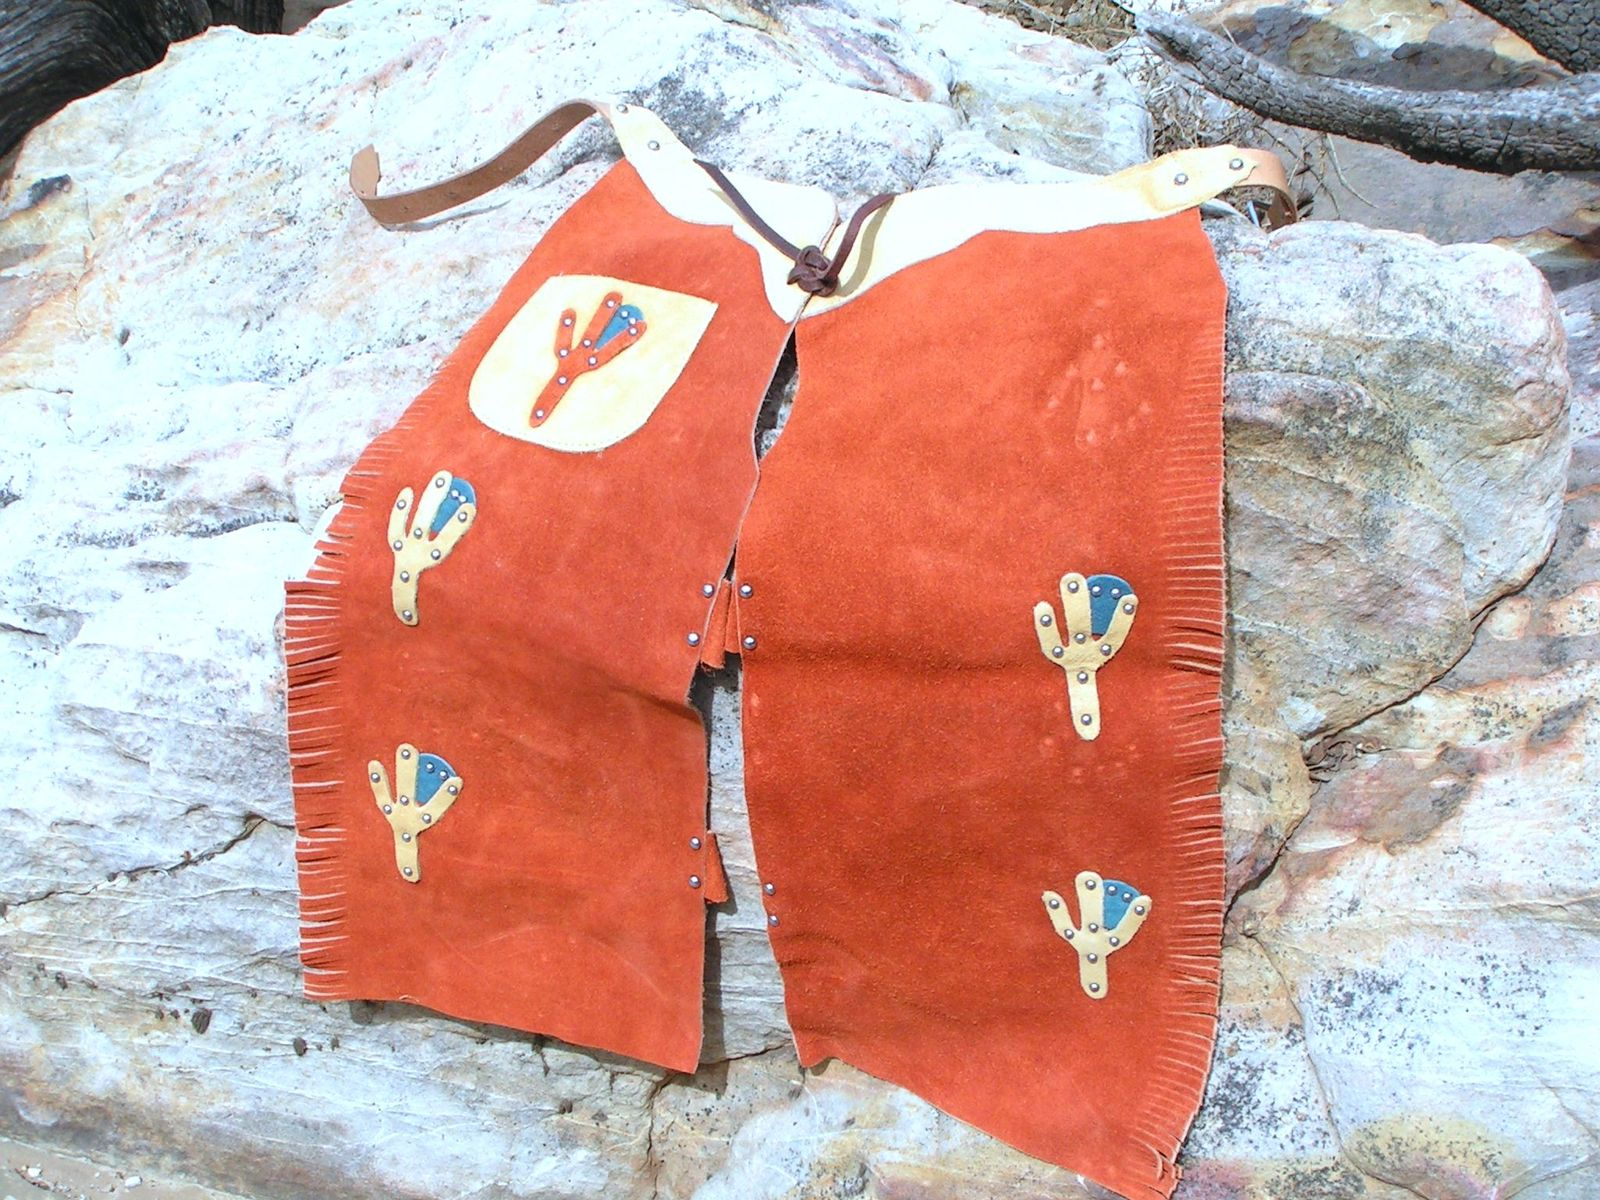 Boys Small size Leather Chaps Vest Western Outfit Costume 51 2-3 yrs